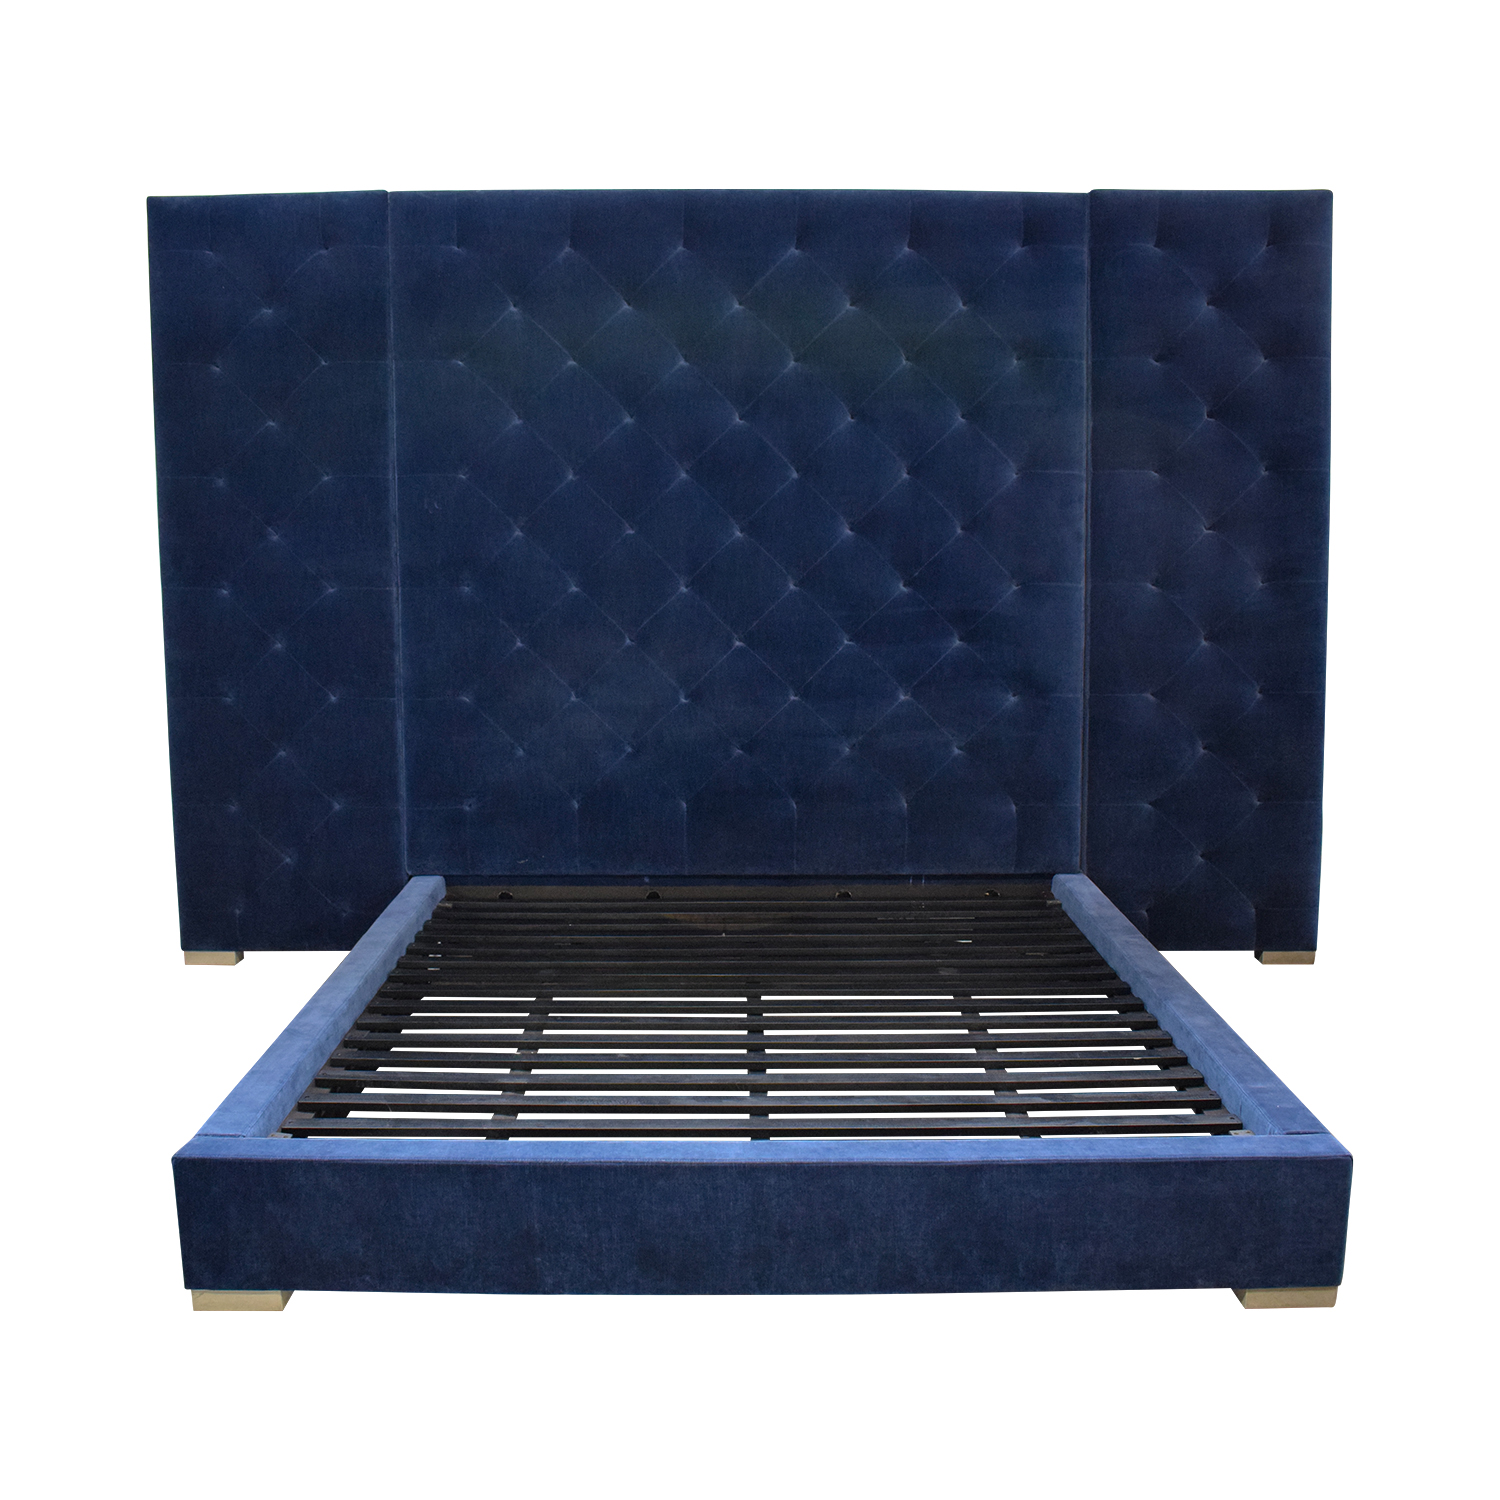 Restoration Hardware Restoration Hardware Blue Tufted King Platform Bed Frame price